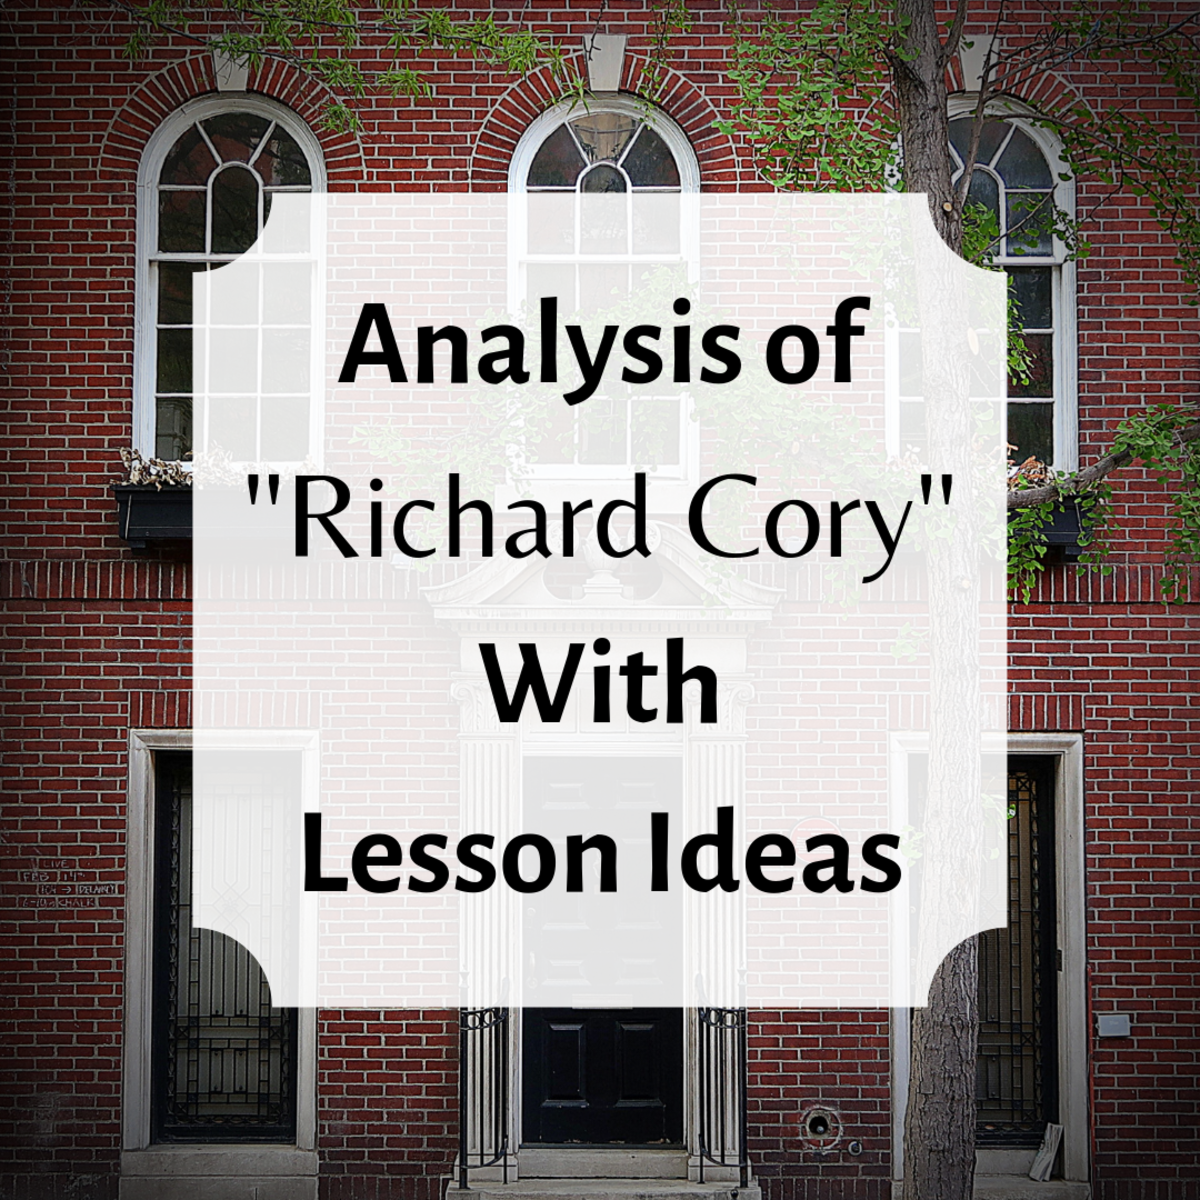 """Richard Cory"" by Edwin Arlington Robinson: Poem Analysis With Lesson Plan Ideas"